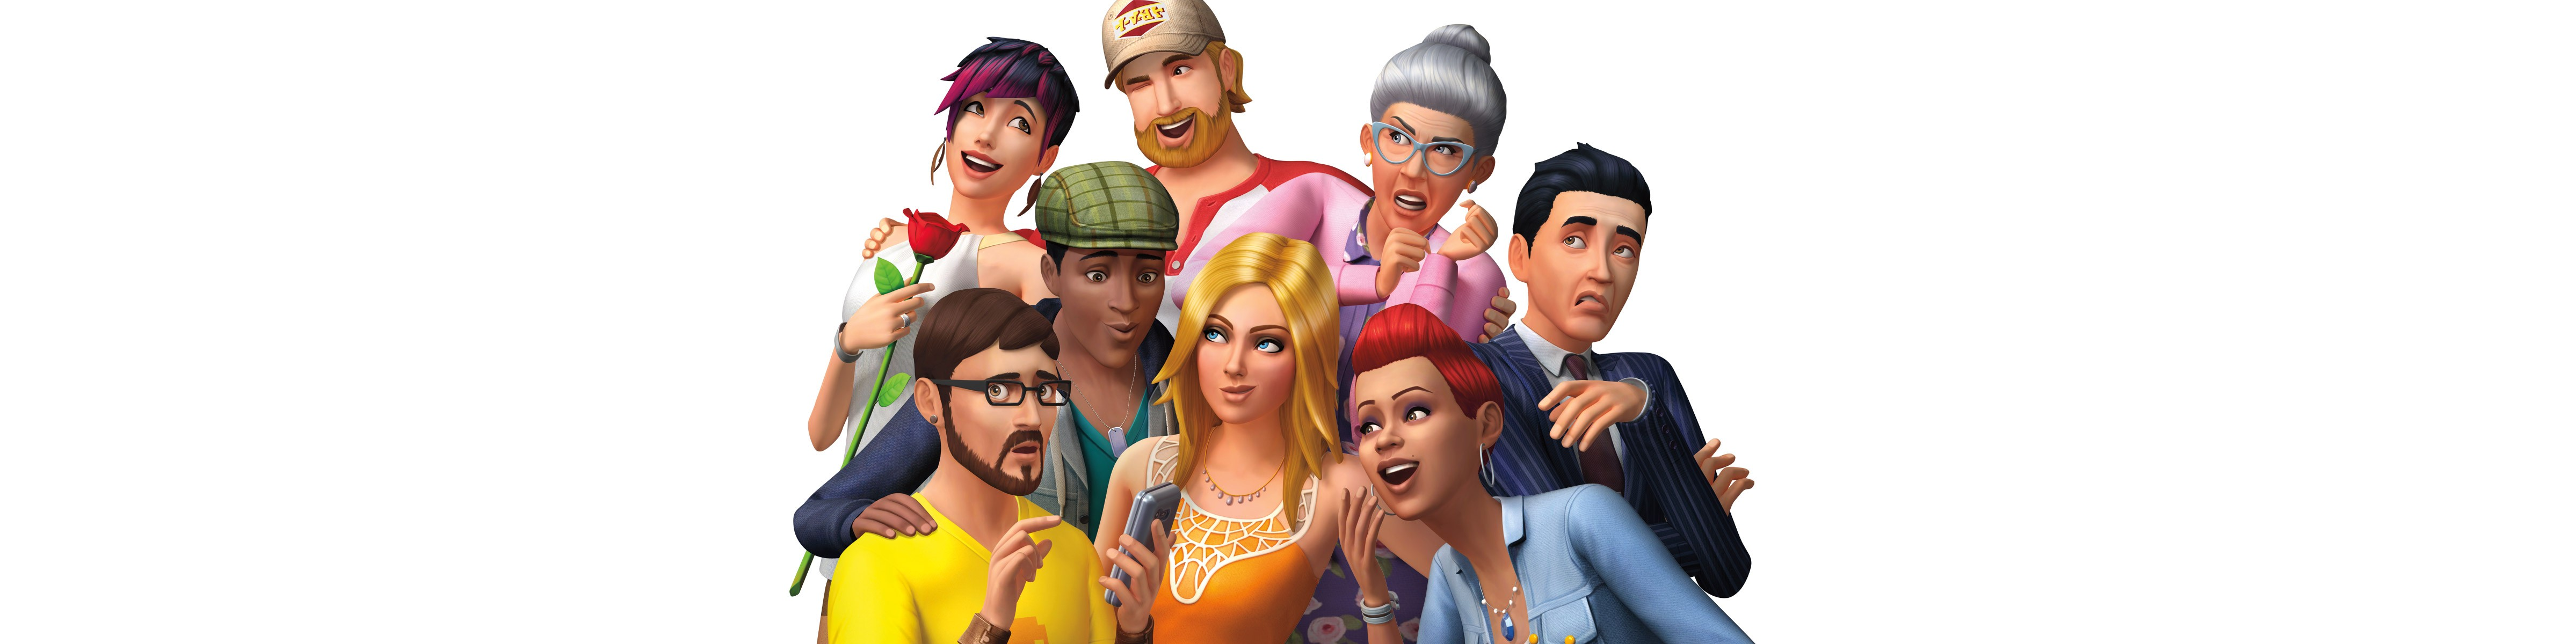 sims 4 free download windows 10 2018